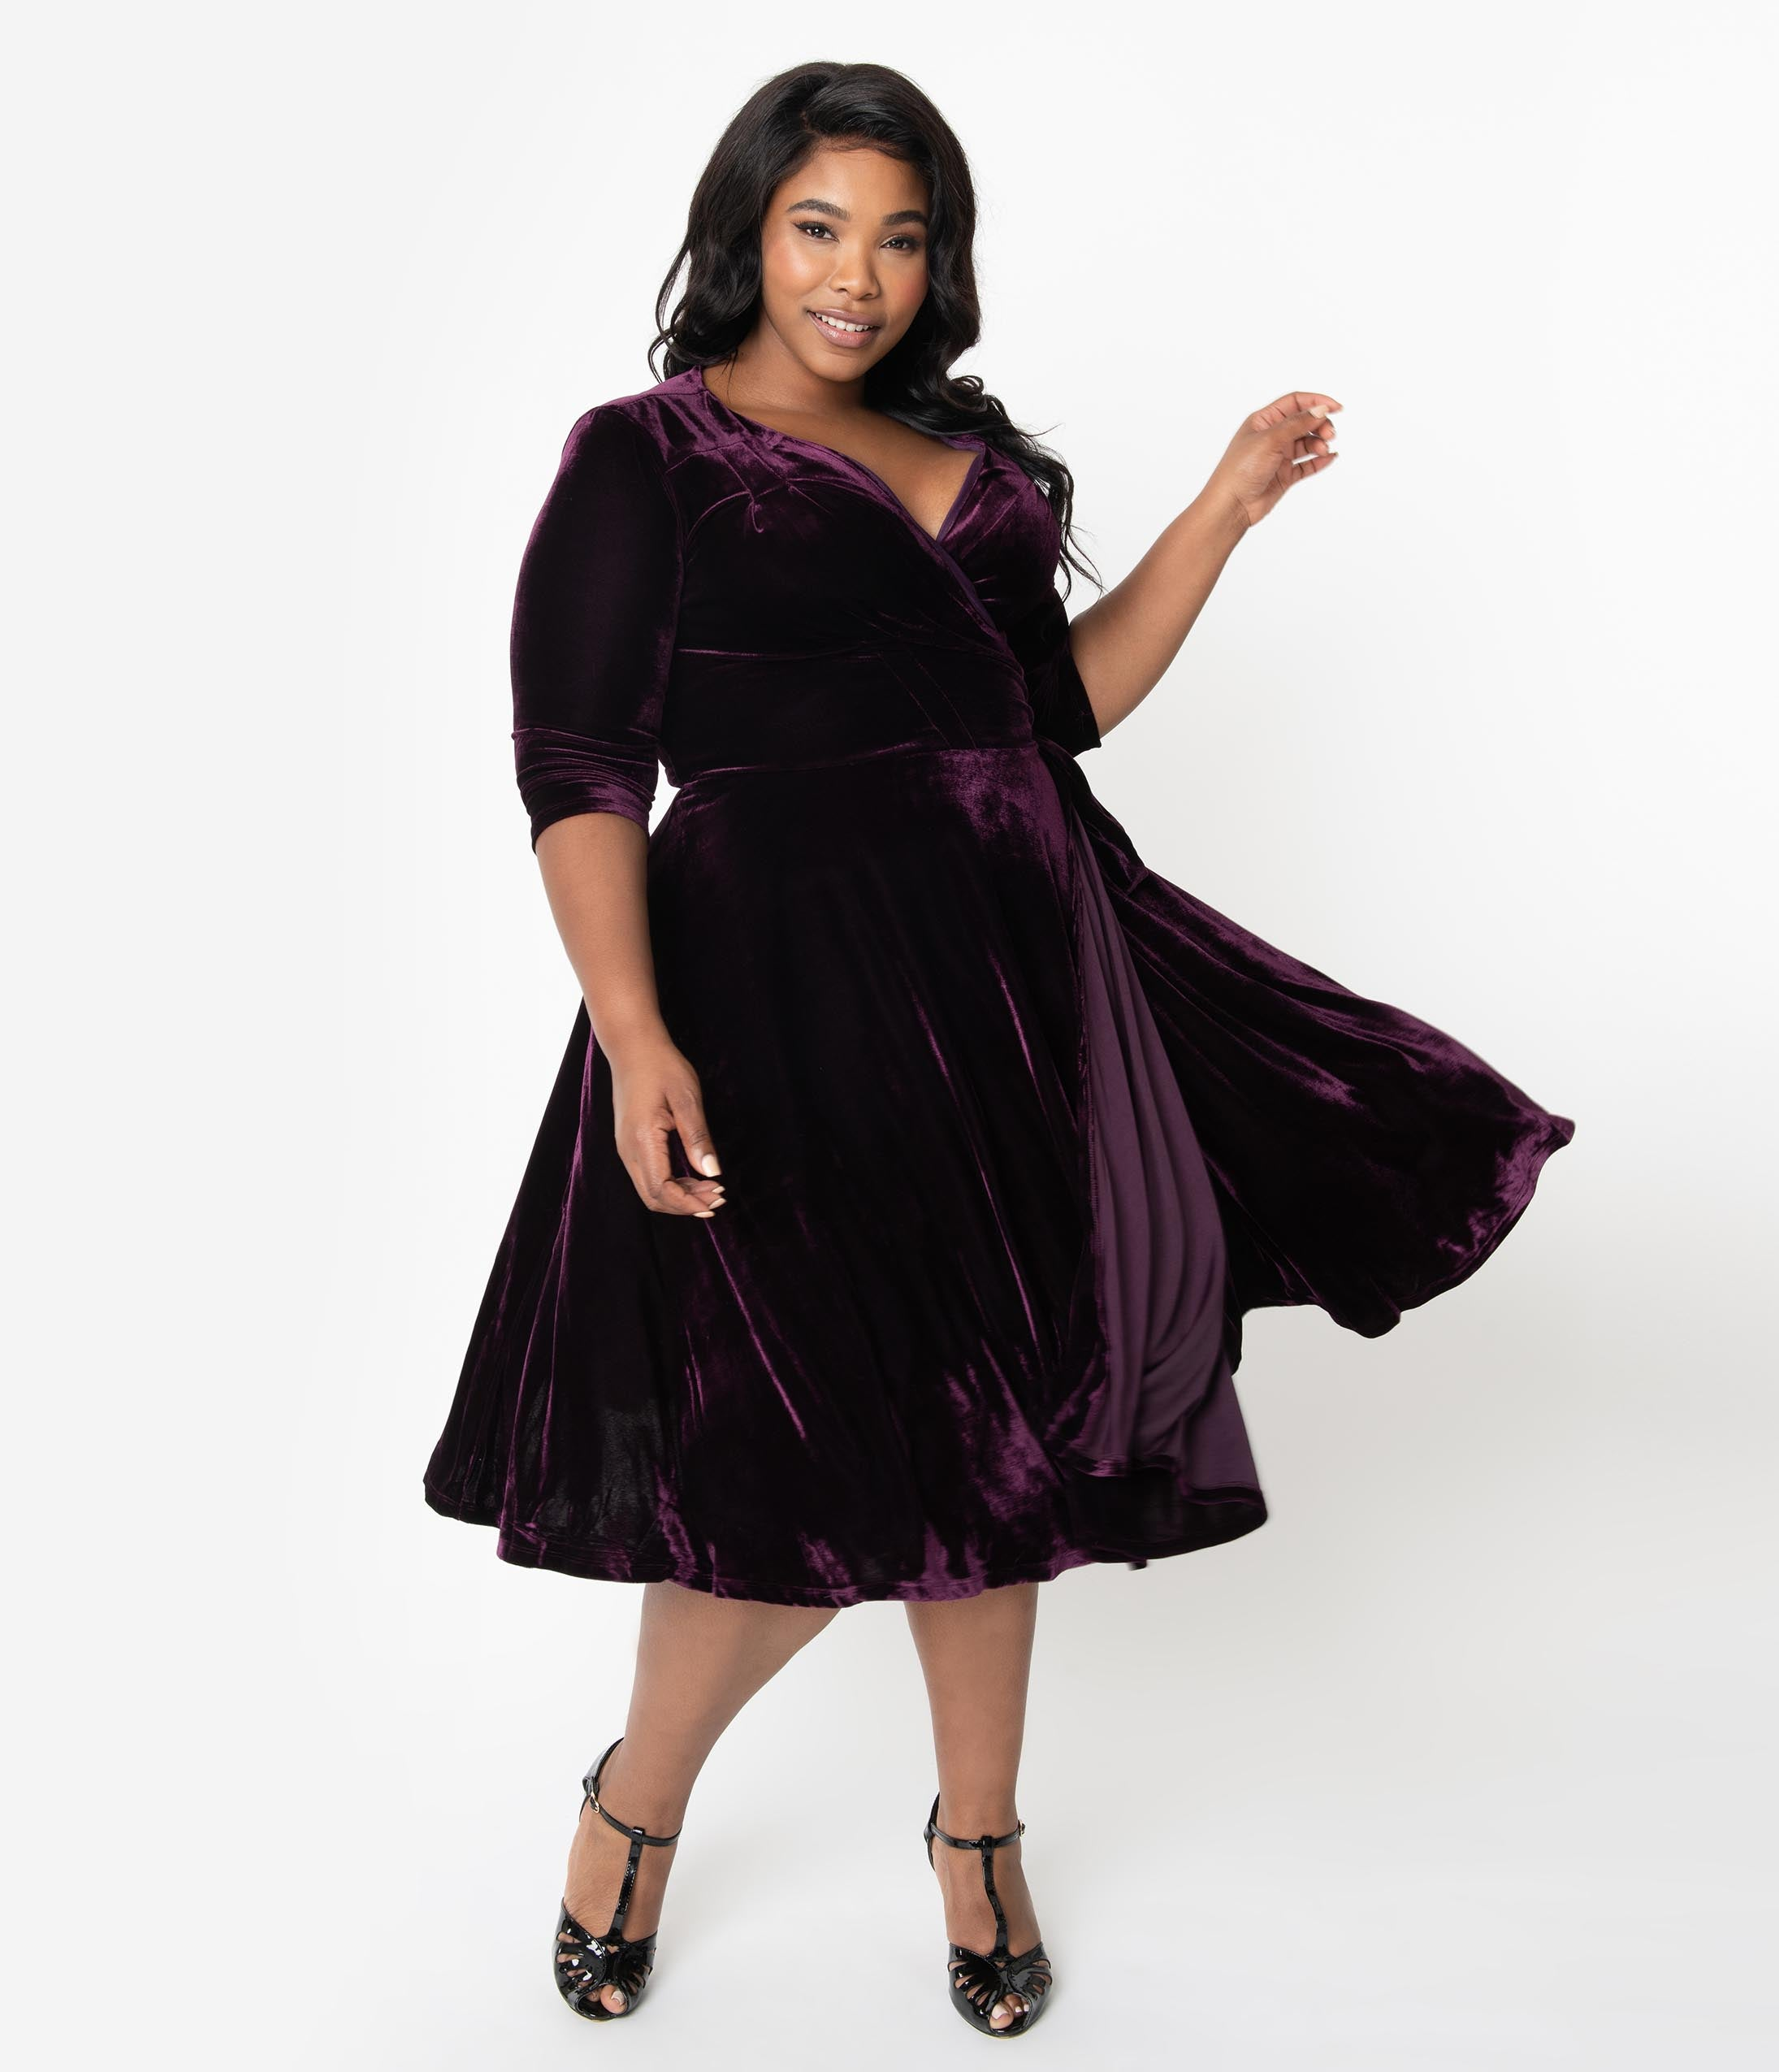 1940s Bridesmaid Dresses, Mother of the Bride Unique Vintage Plus Size 1940S Style Eggplant Purple Velvet Kelsie Wrap Dress $98.00 AT vintagedancer.com